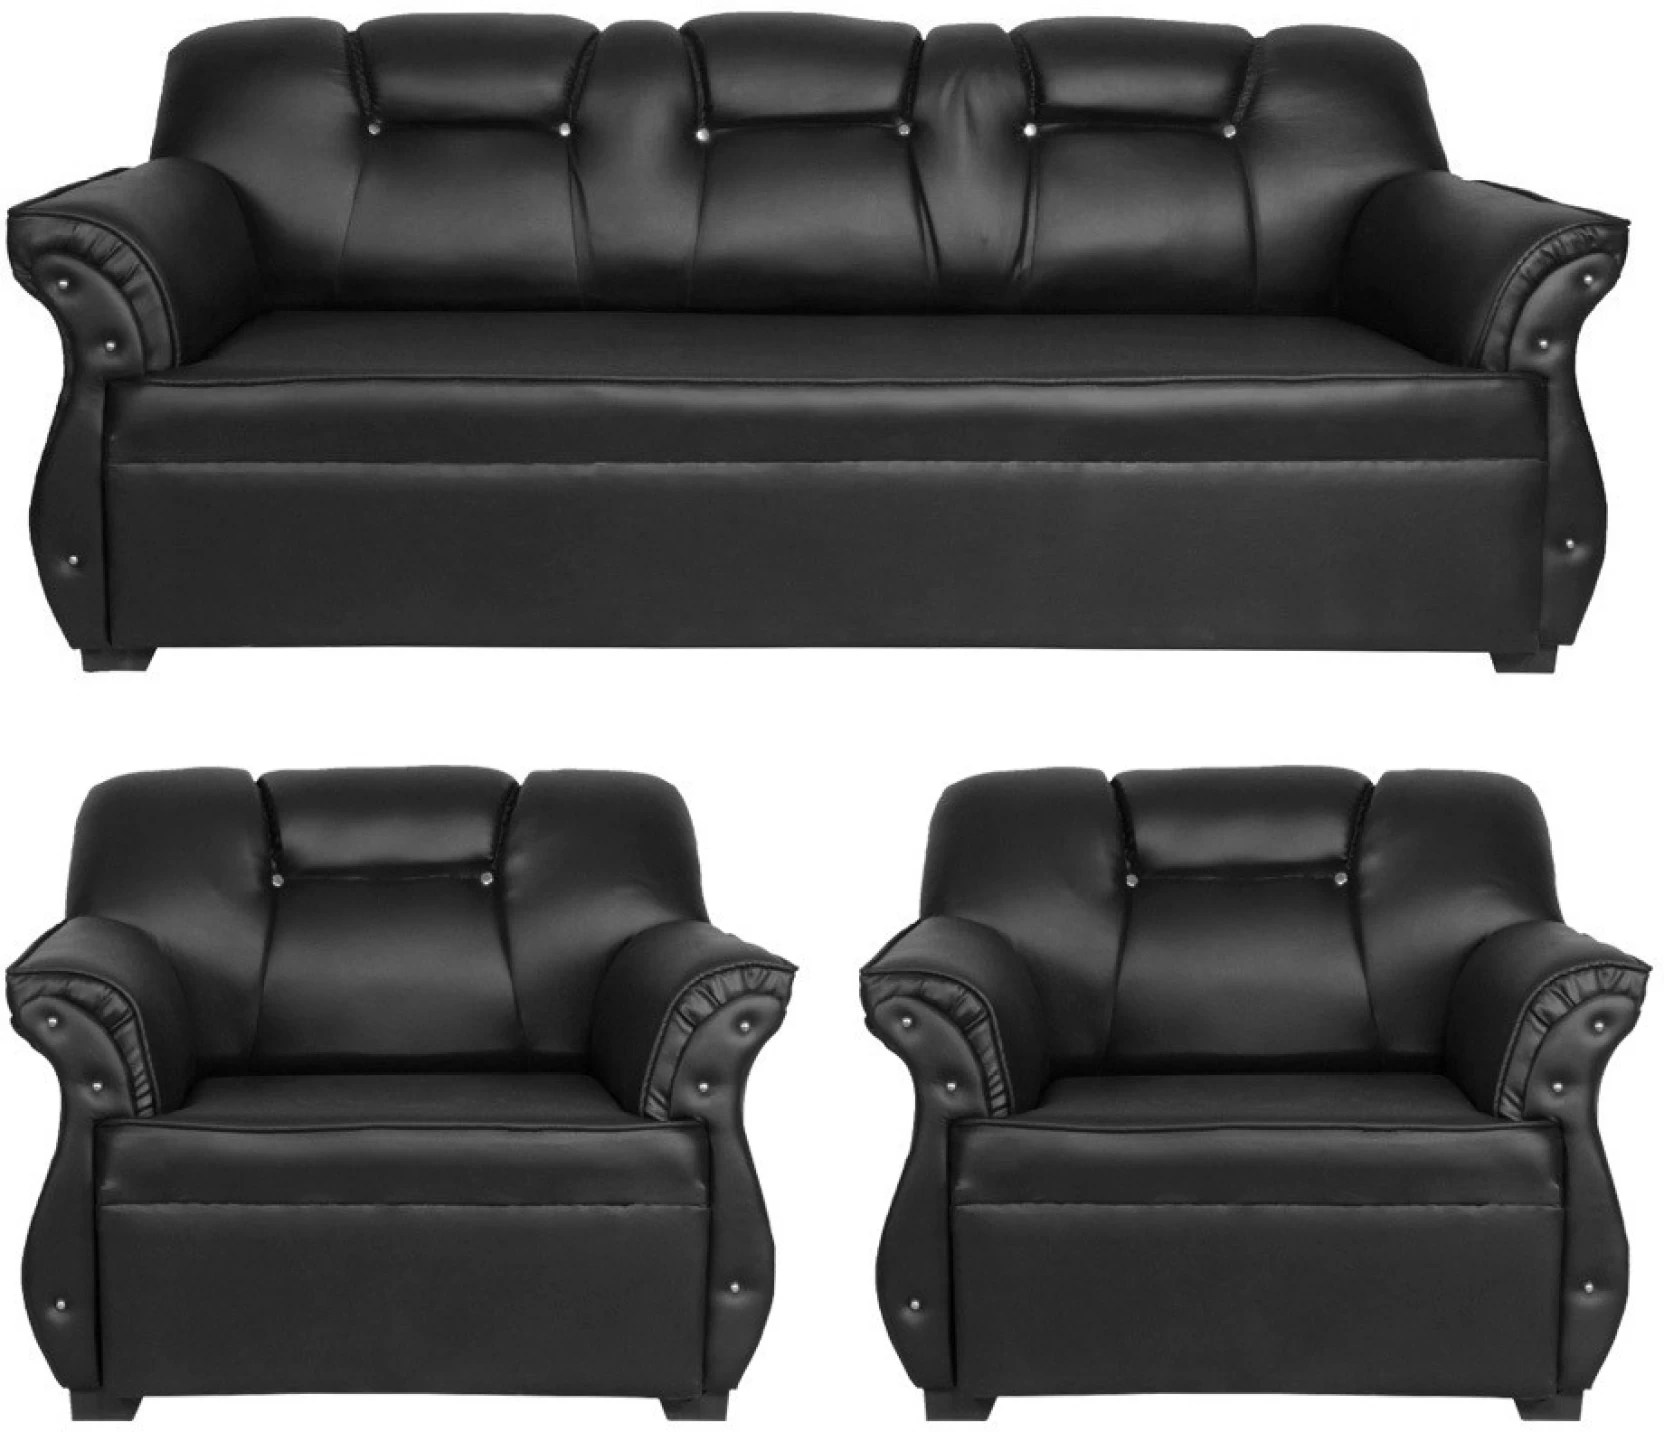 Sofa Set Price Haldwani Homestock Leatherette 3 43 1 43 1 Black Sofa Set Price In